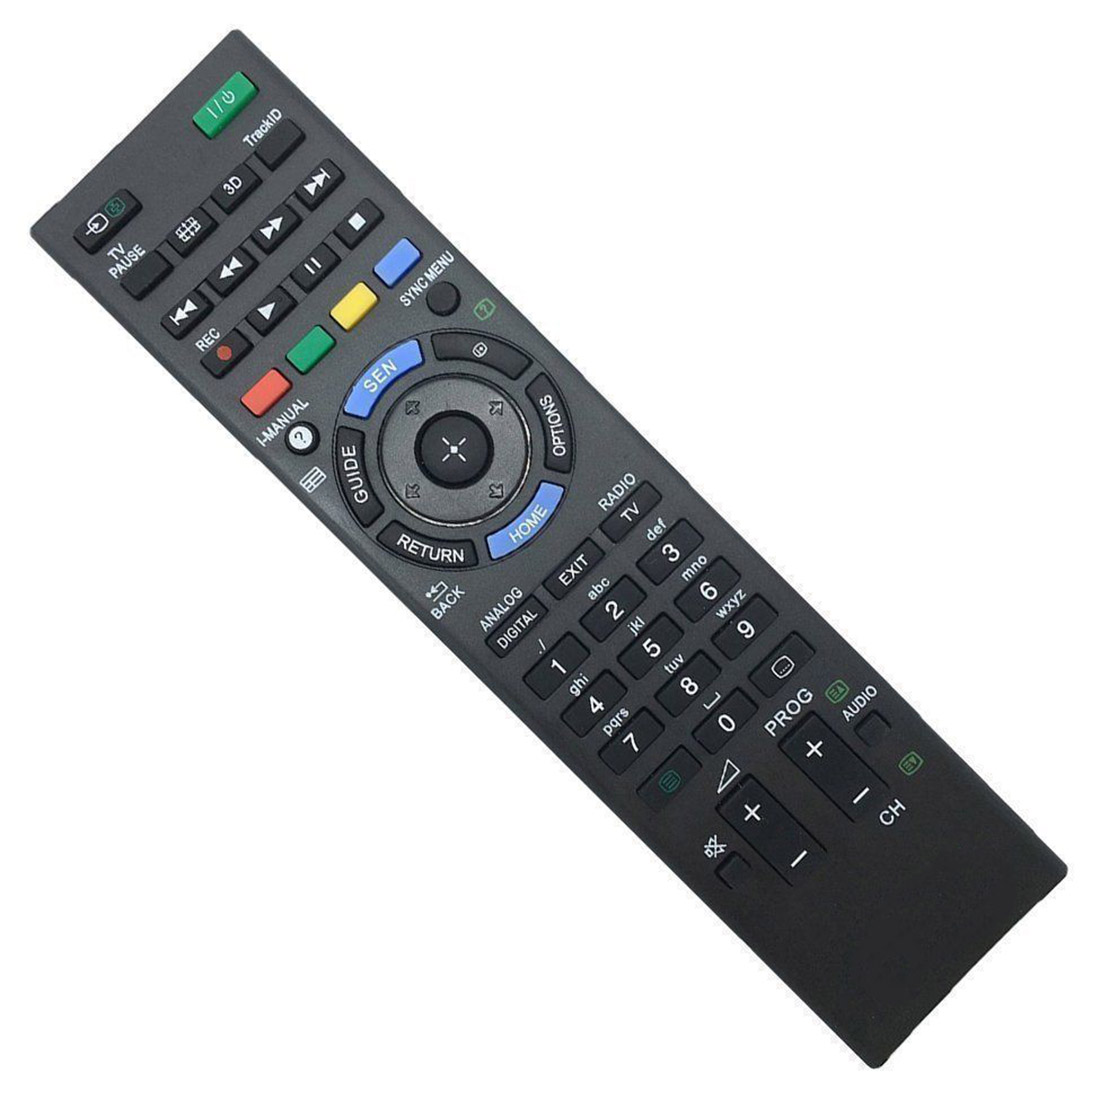 US $5 86 21% OFF|New Remote Control RM ED047 For SONY Bravia TV KDL 40HX750  KDL 46HX850-in Remote Controls from Consumer Electronics on Aliexpress com